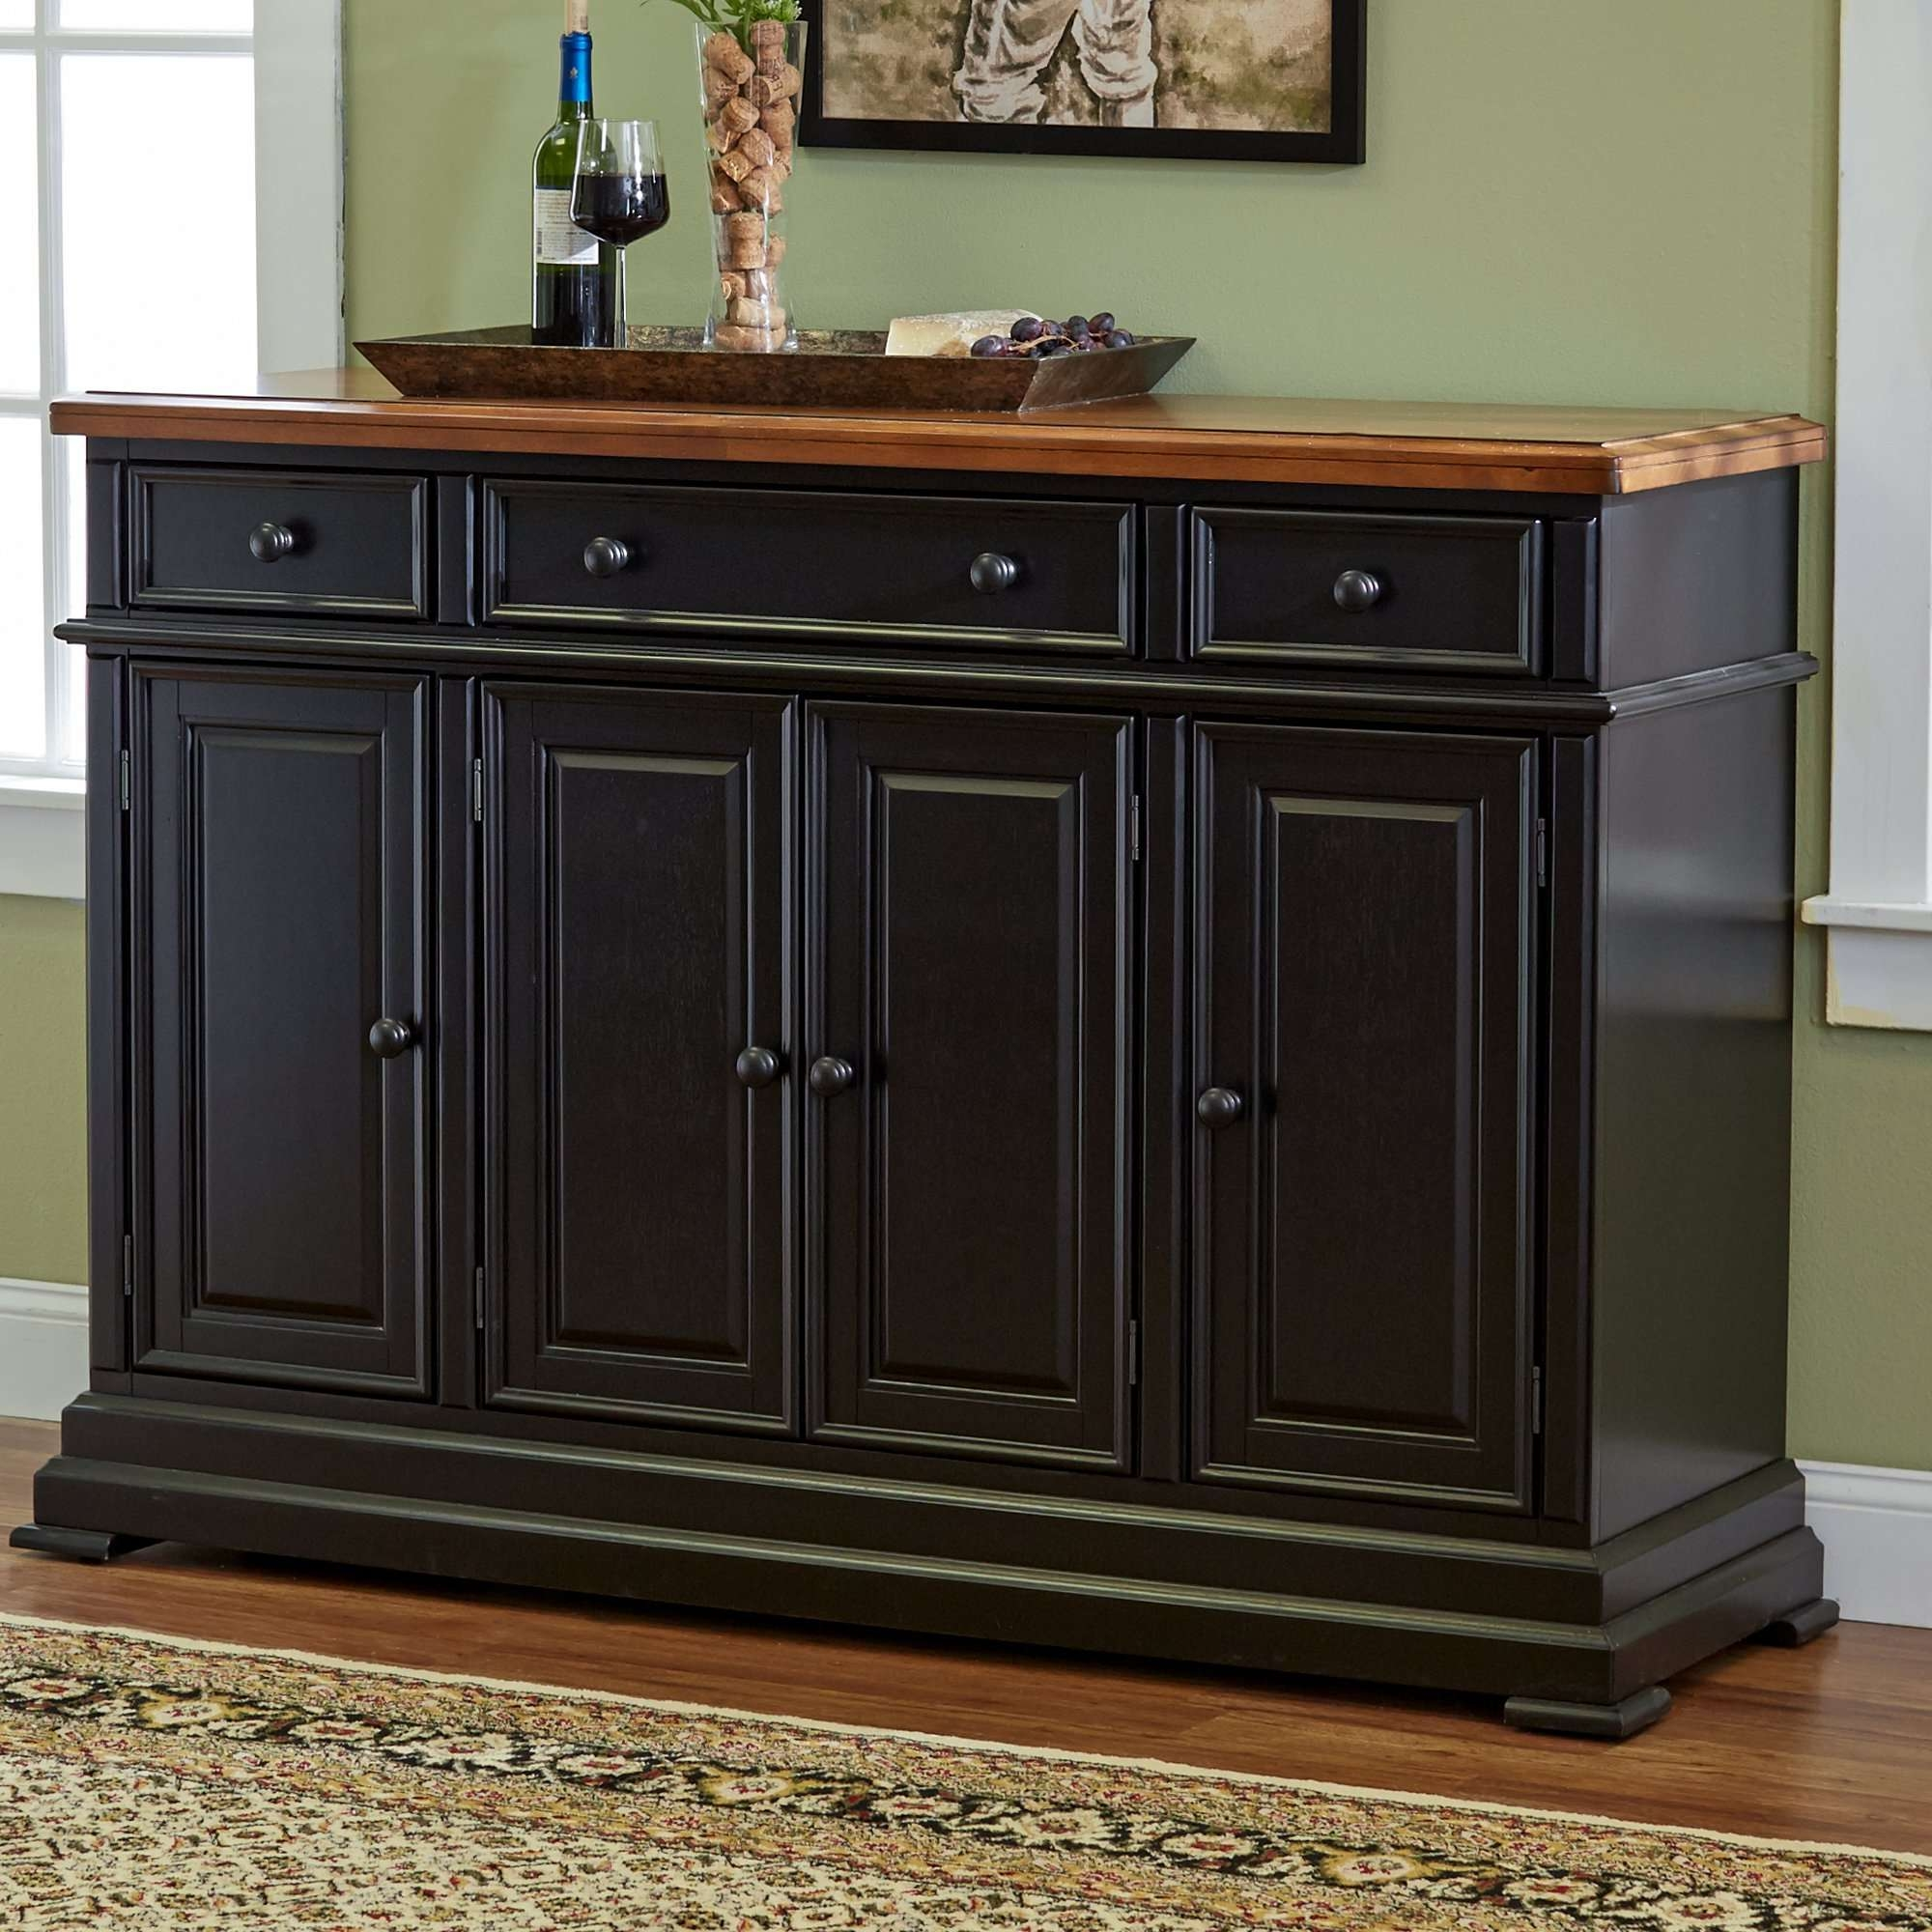 Luxury Rustic Sideboard Buffet – Bjdgjy With Regard To Rustic Sideboards (View 12 of 20)